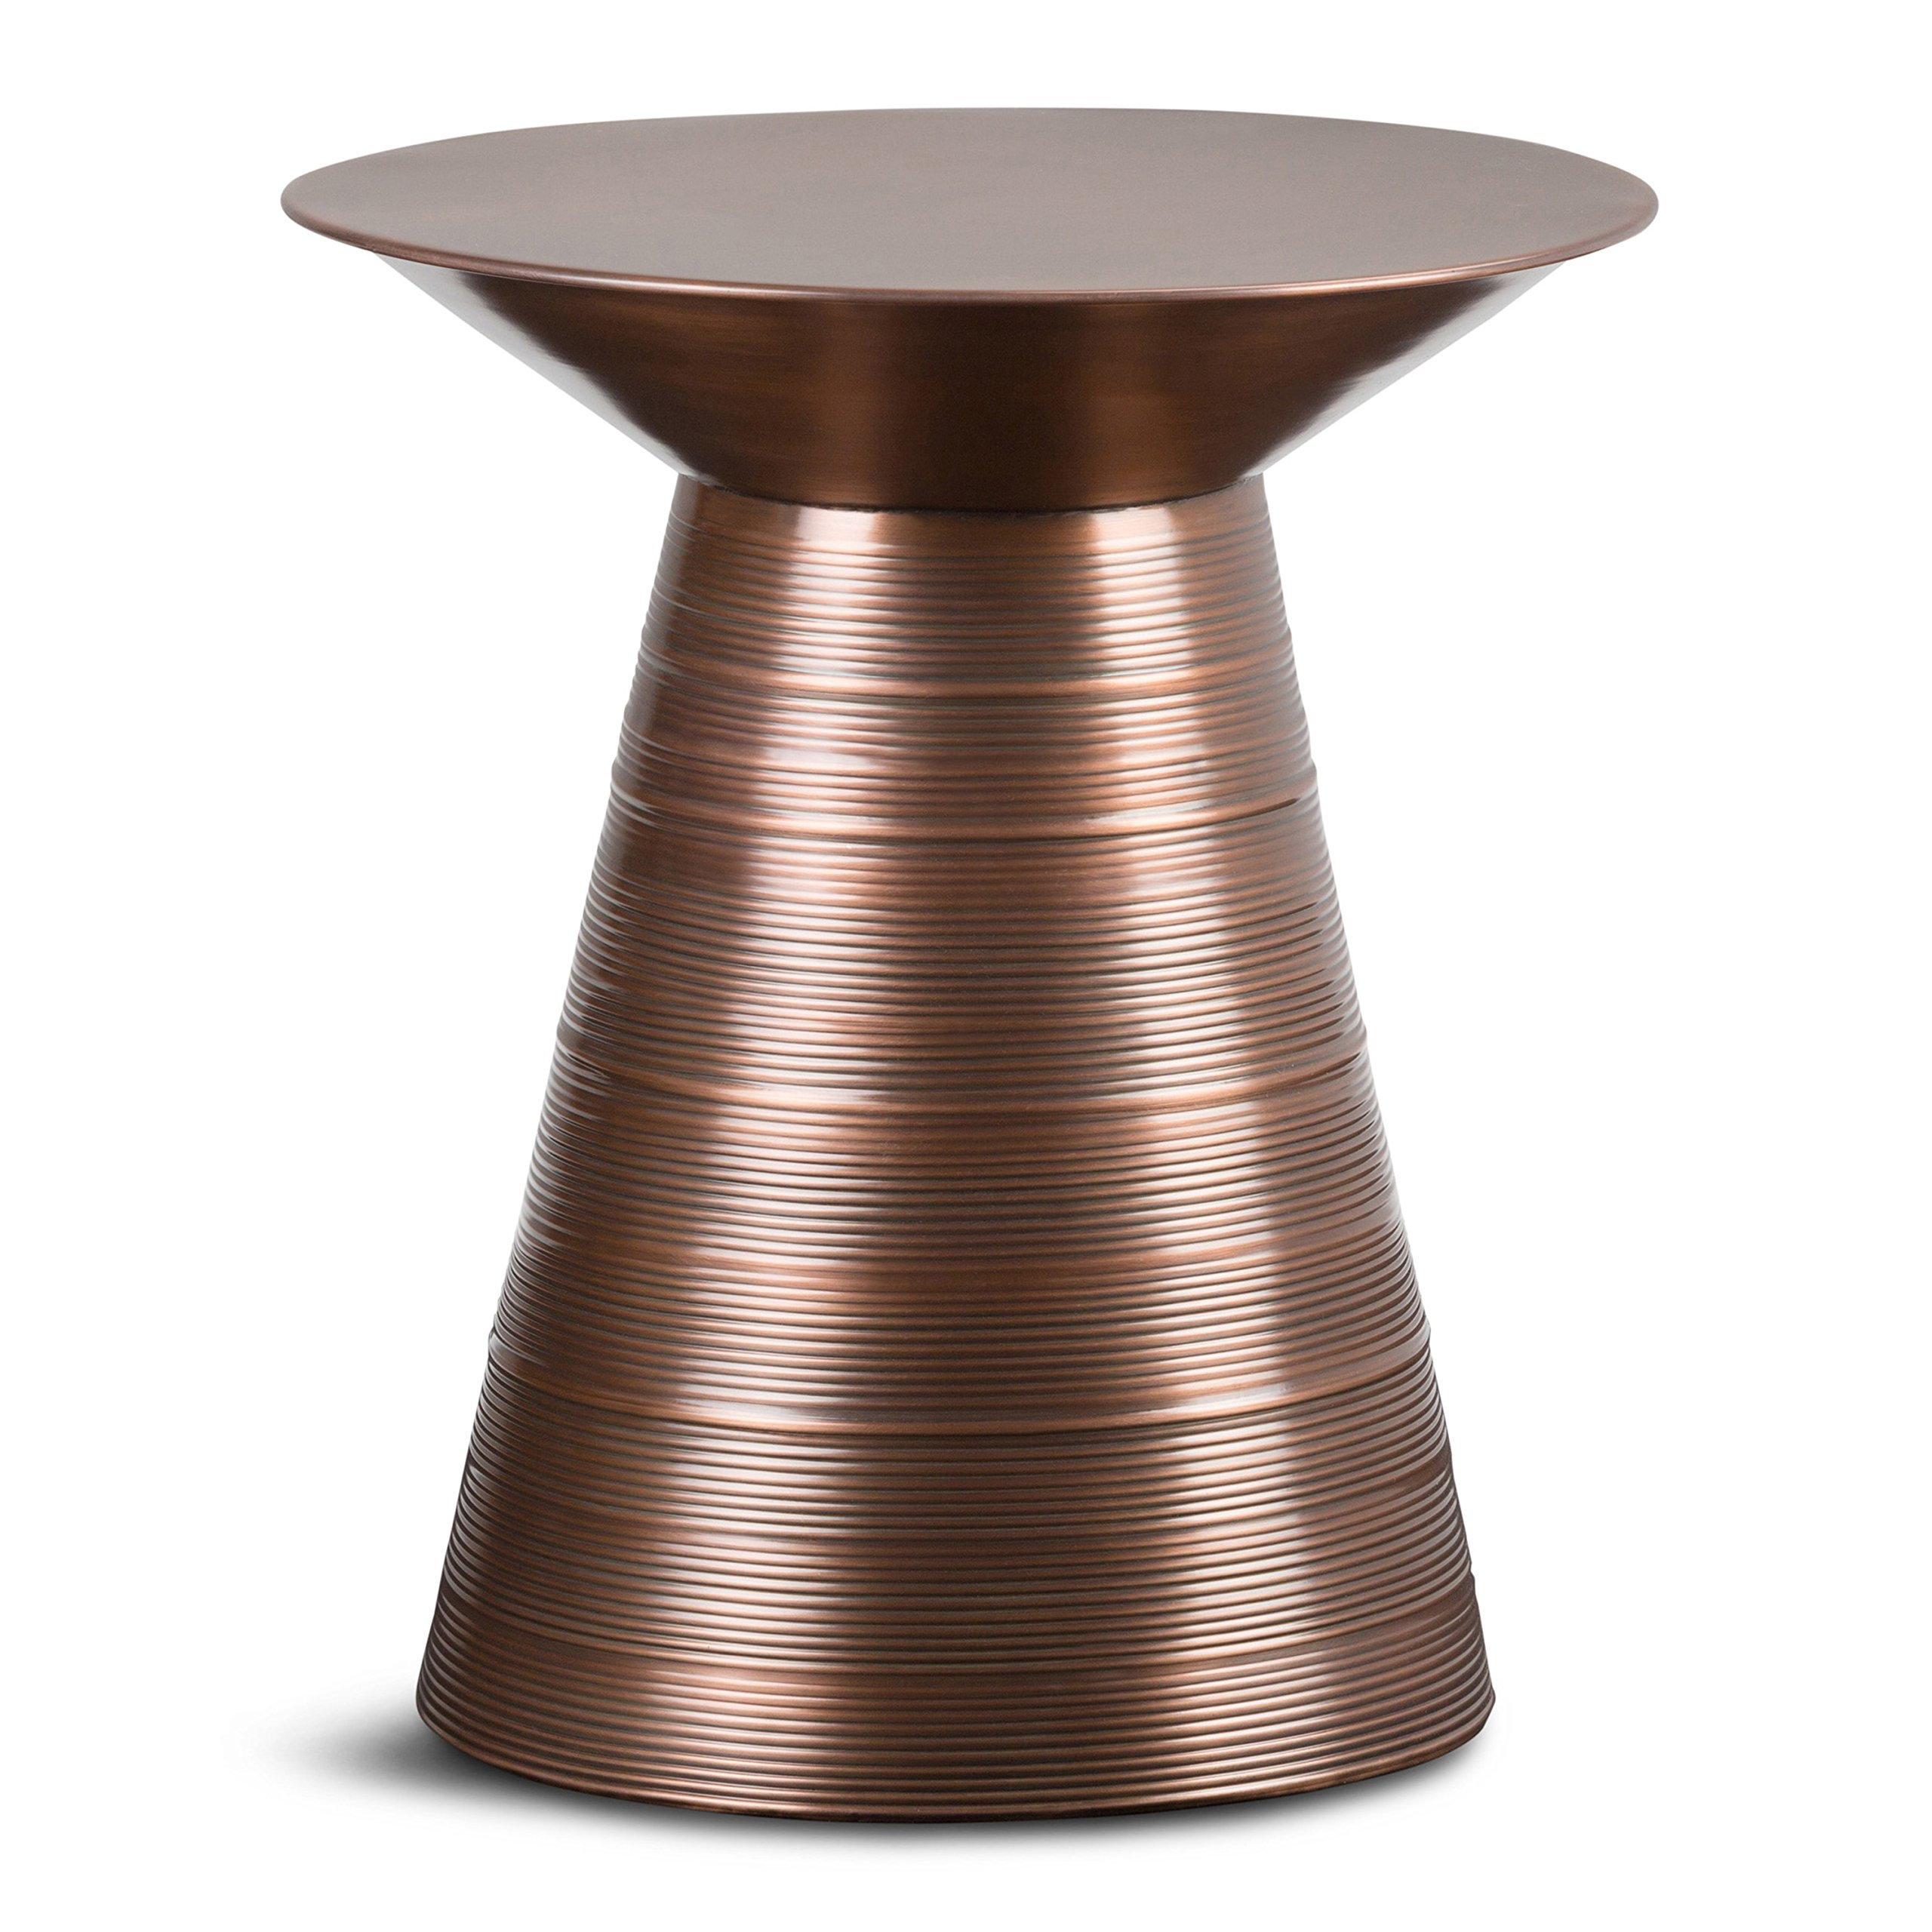 Simpli Home AXCMTBL-10 Sheridan Contemporary 18 inch Wide Metal Accent Side Table in Aged Copper, Fully Assembled by Simpli Home